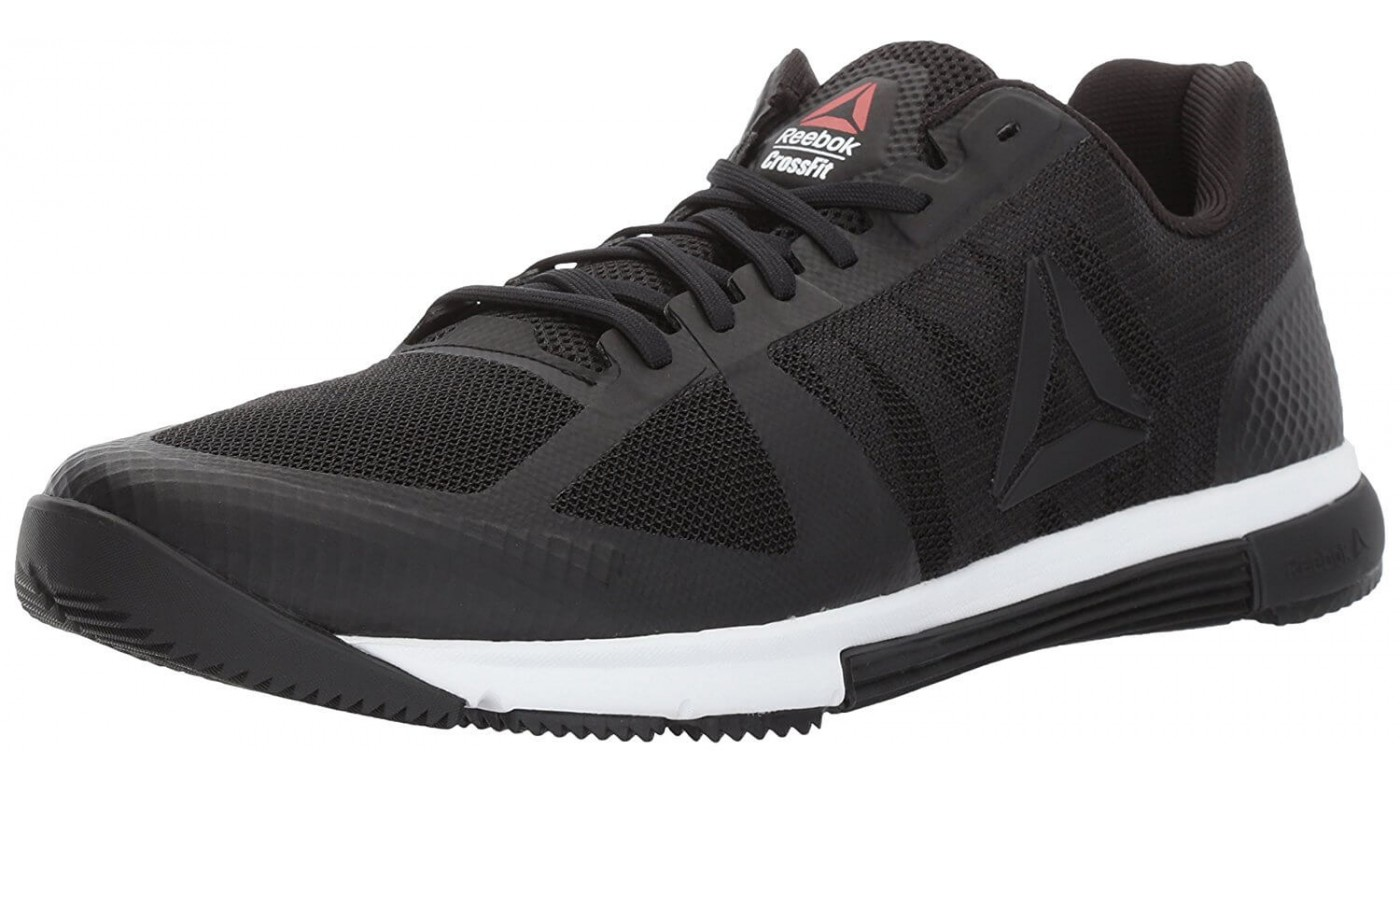 The Reebok Crossfit Speed TR 2.0 is a training shoe specifically designed for CrossFit.